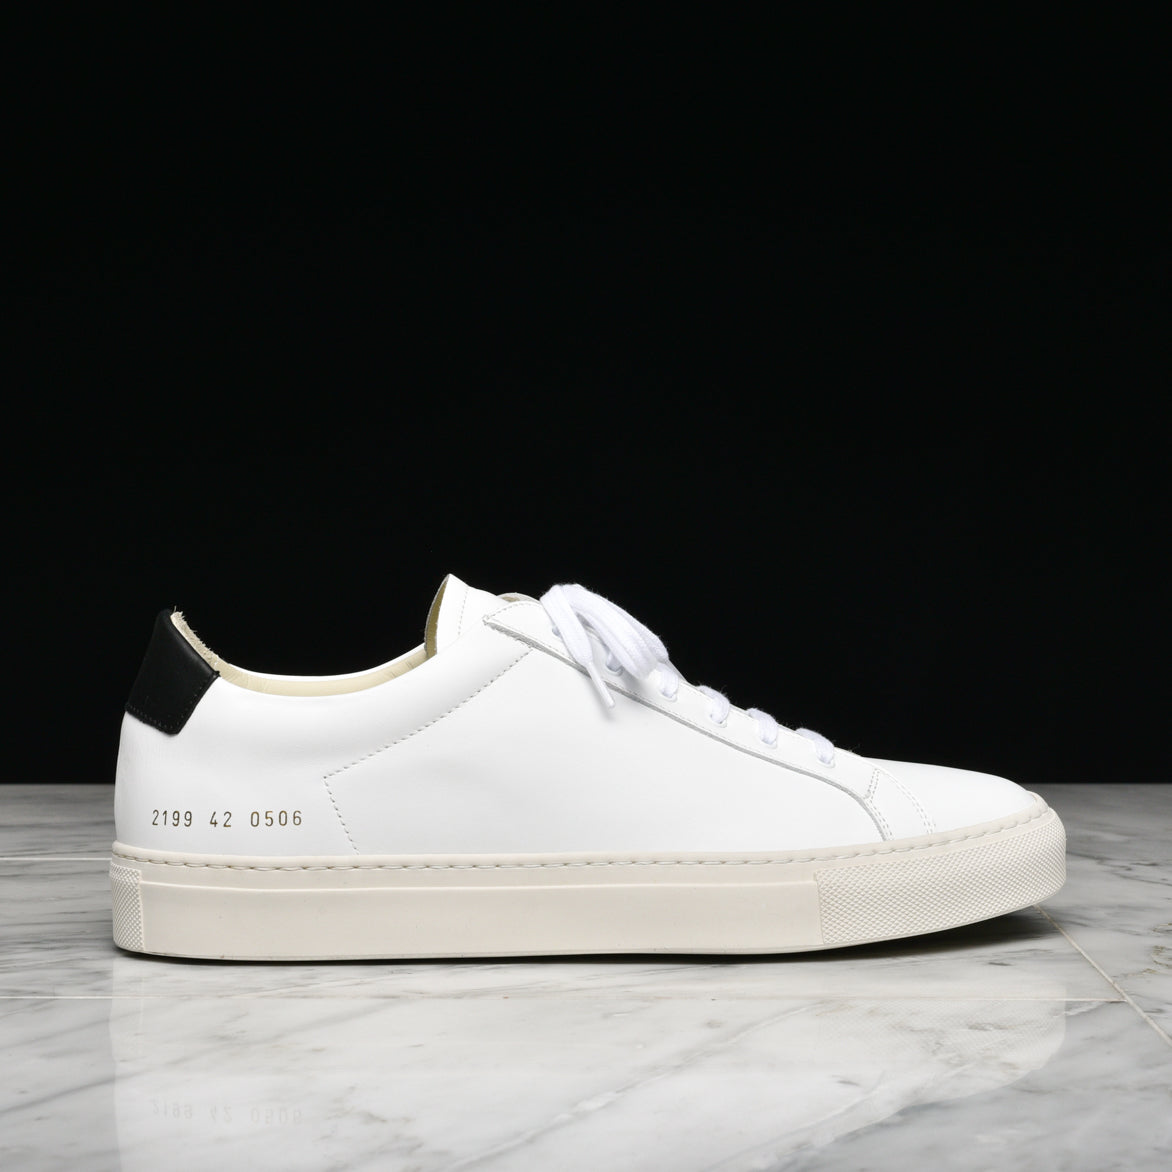 RETRO LOW - WHITE